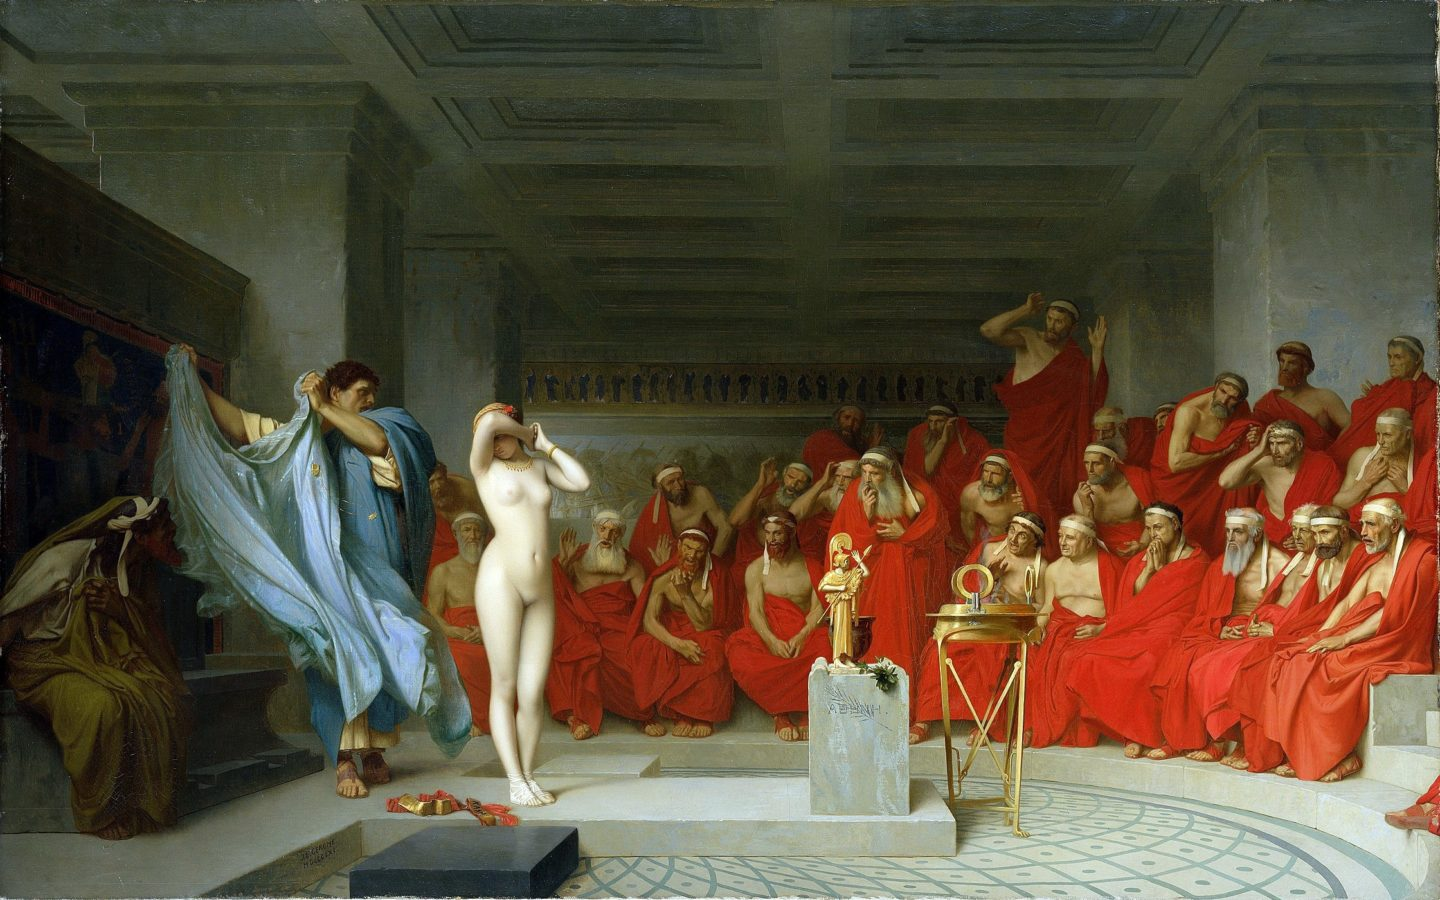 Respectable Women From Art History - Yes, Most Of Them Were Naked. A Short Comment To Burkinis. - DailyArtMagazine.com - Art History Stories